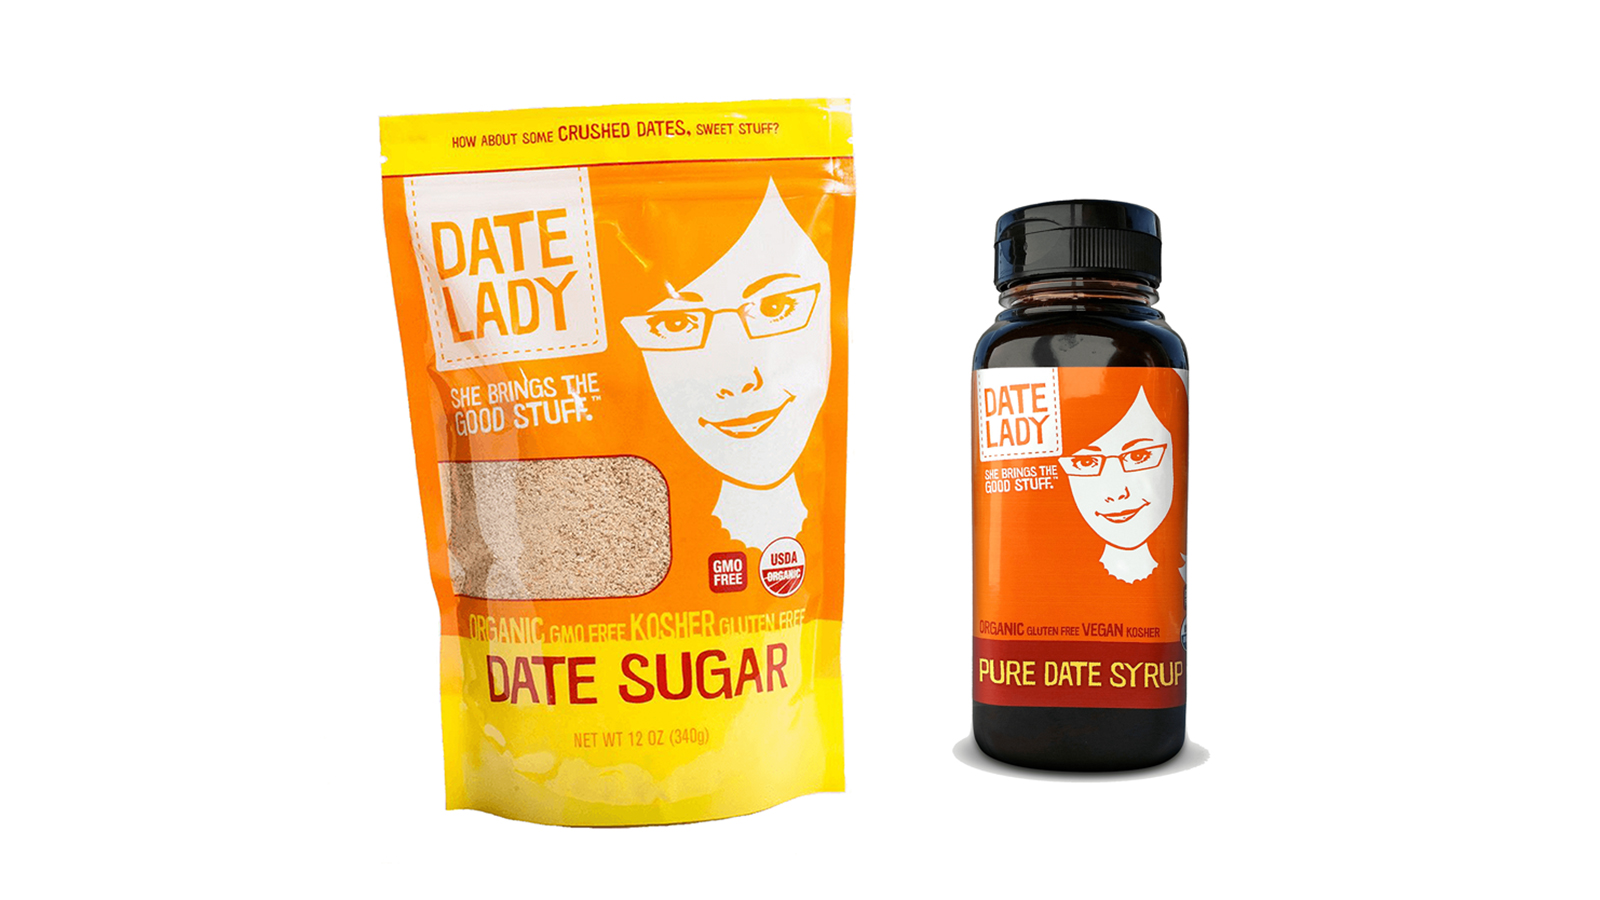 Date Lady Organic Date Sugar and Syrup